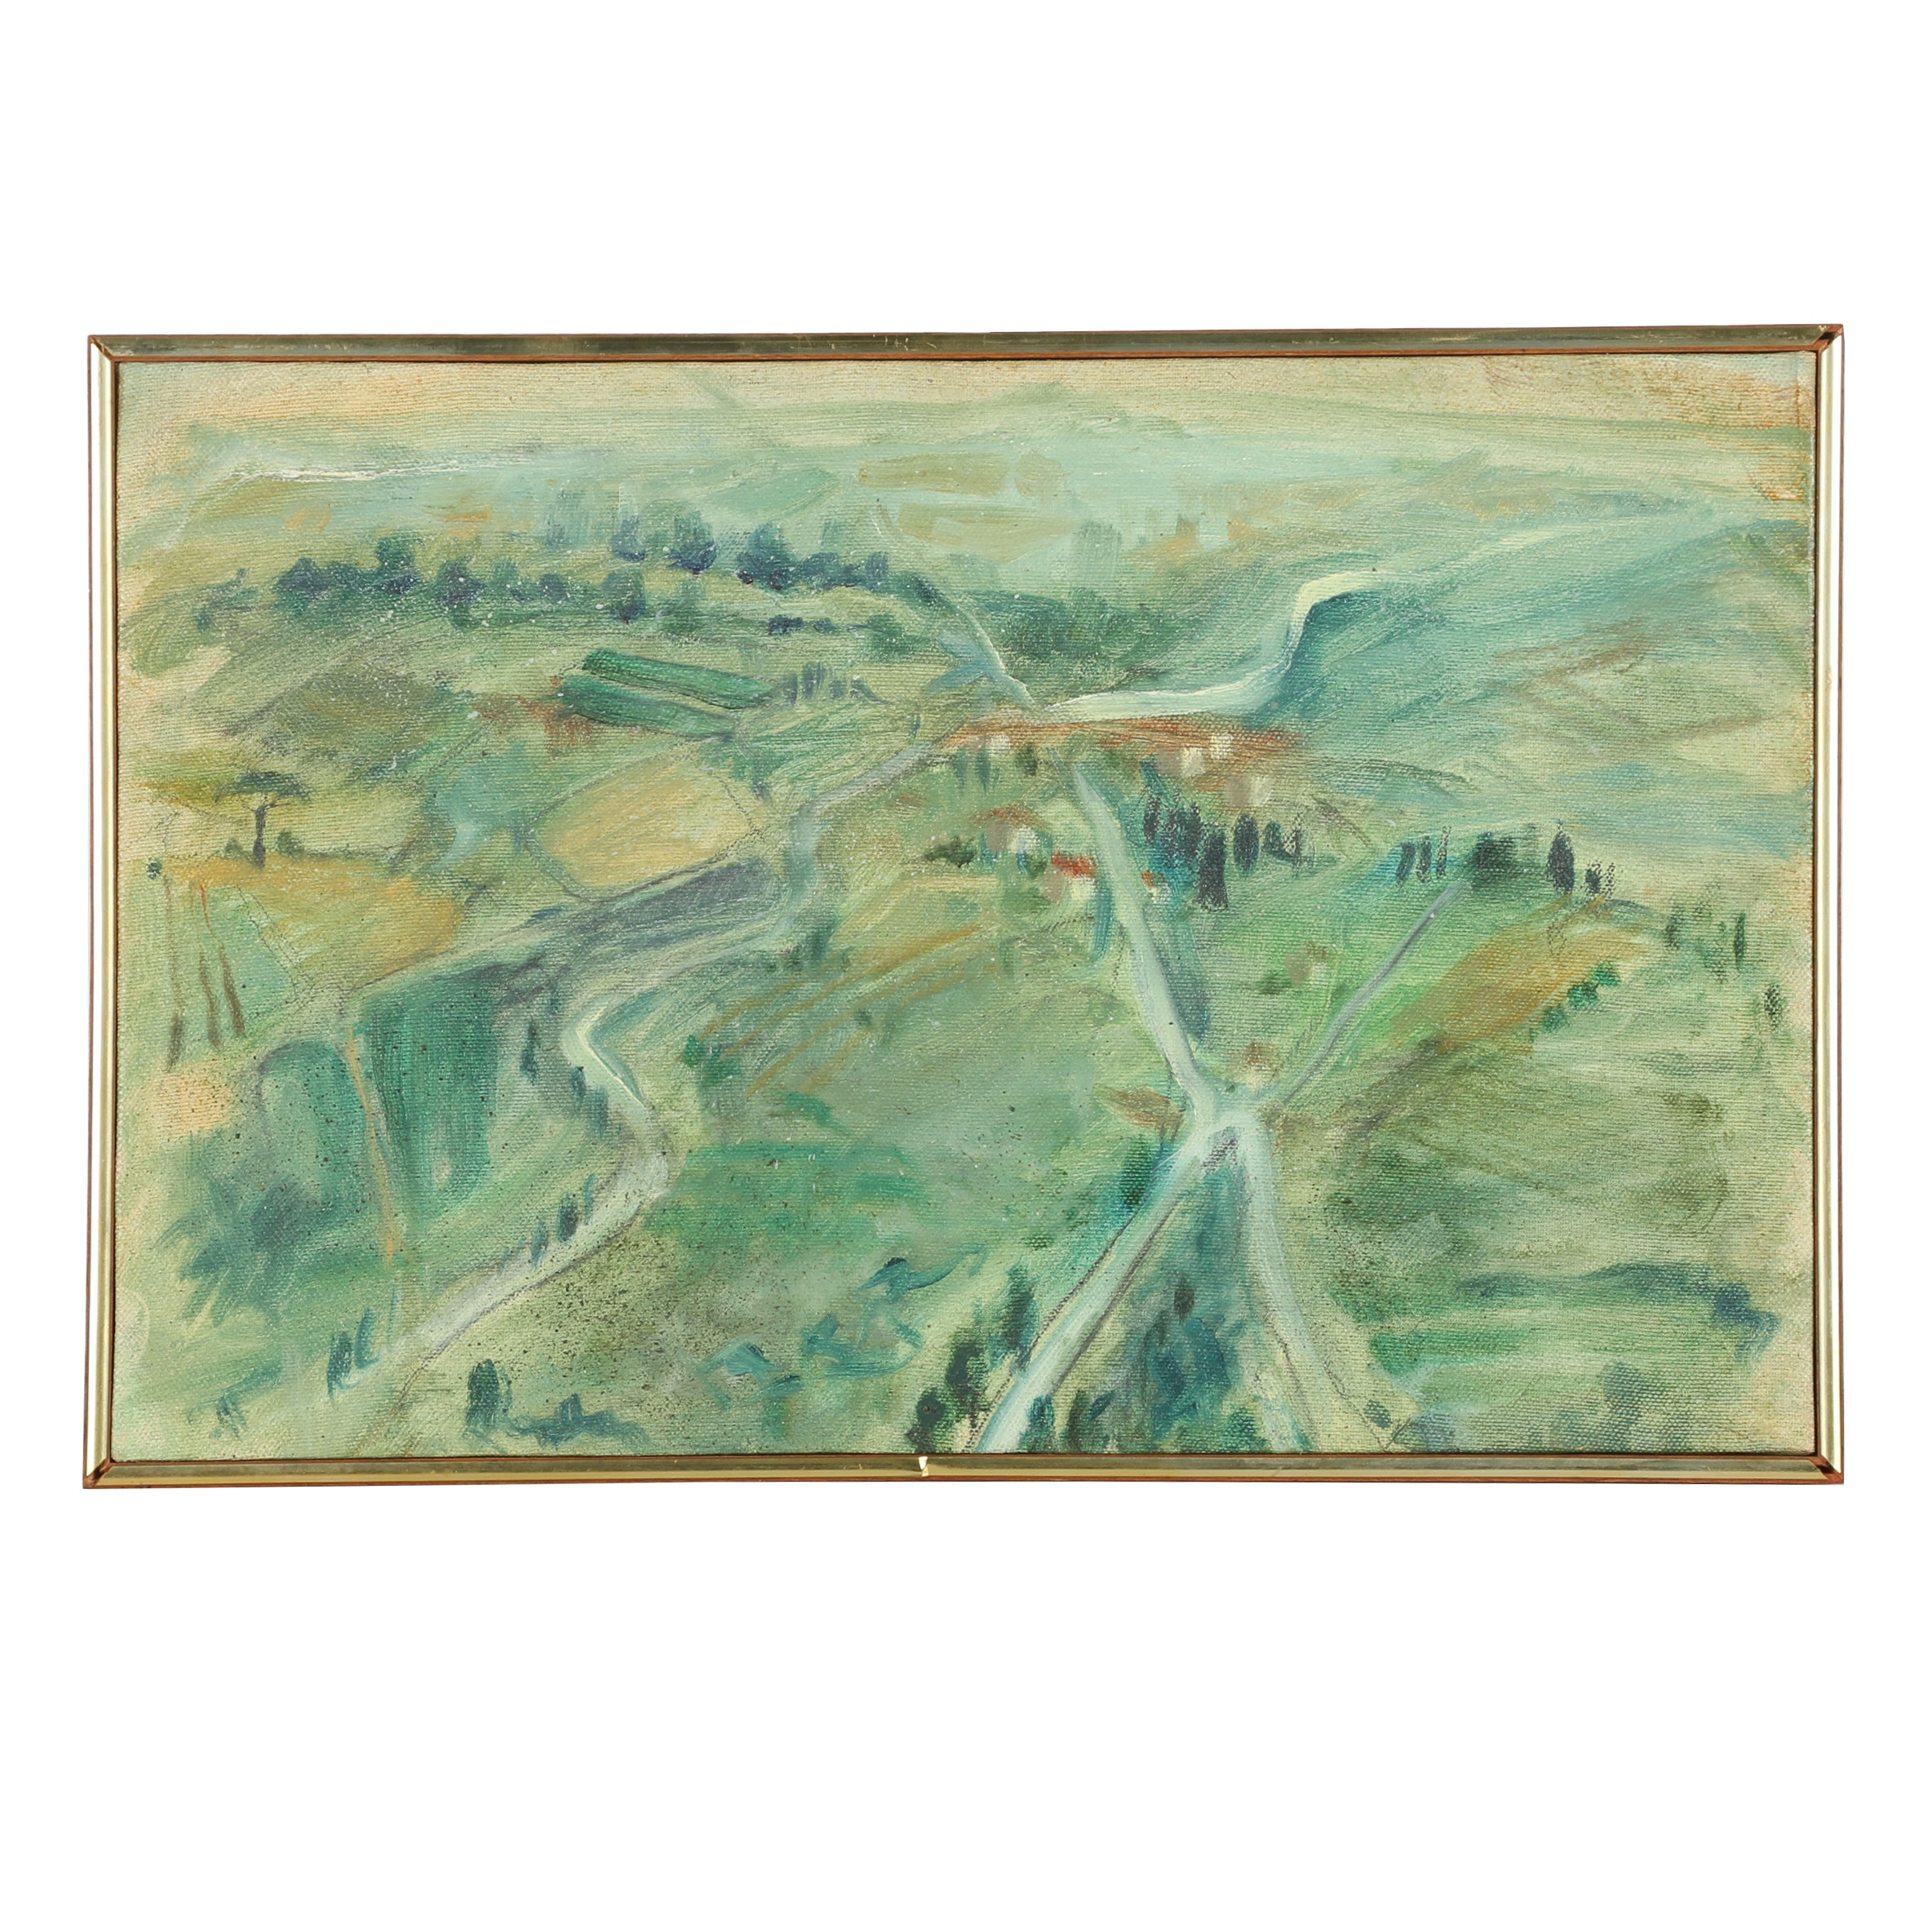 Aerial Painting of a Landscape